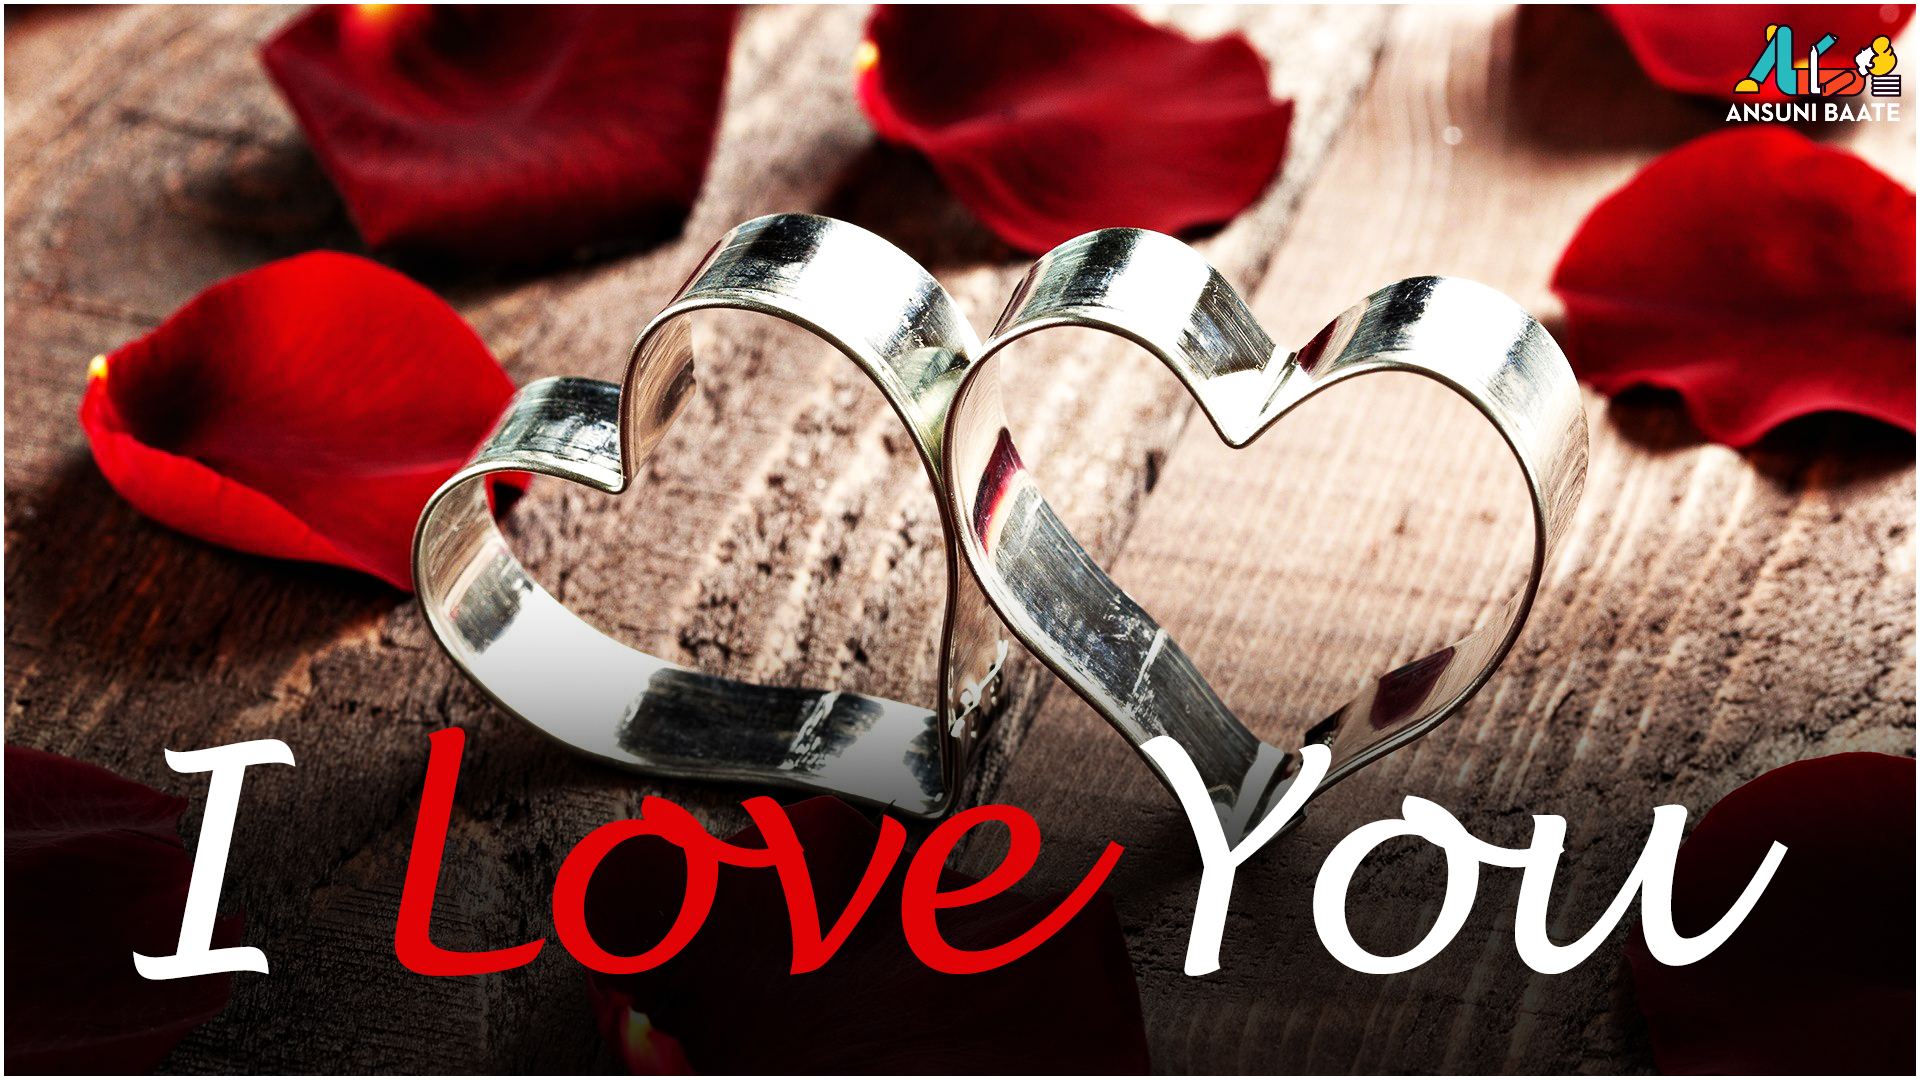 Love Images Full Hd Gallery Wallpapers Download लव